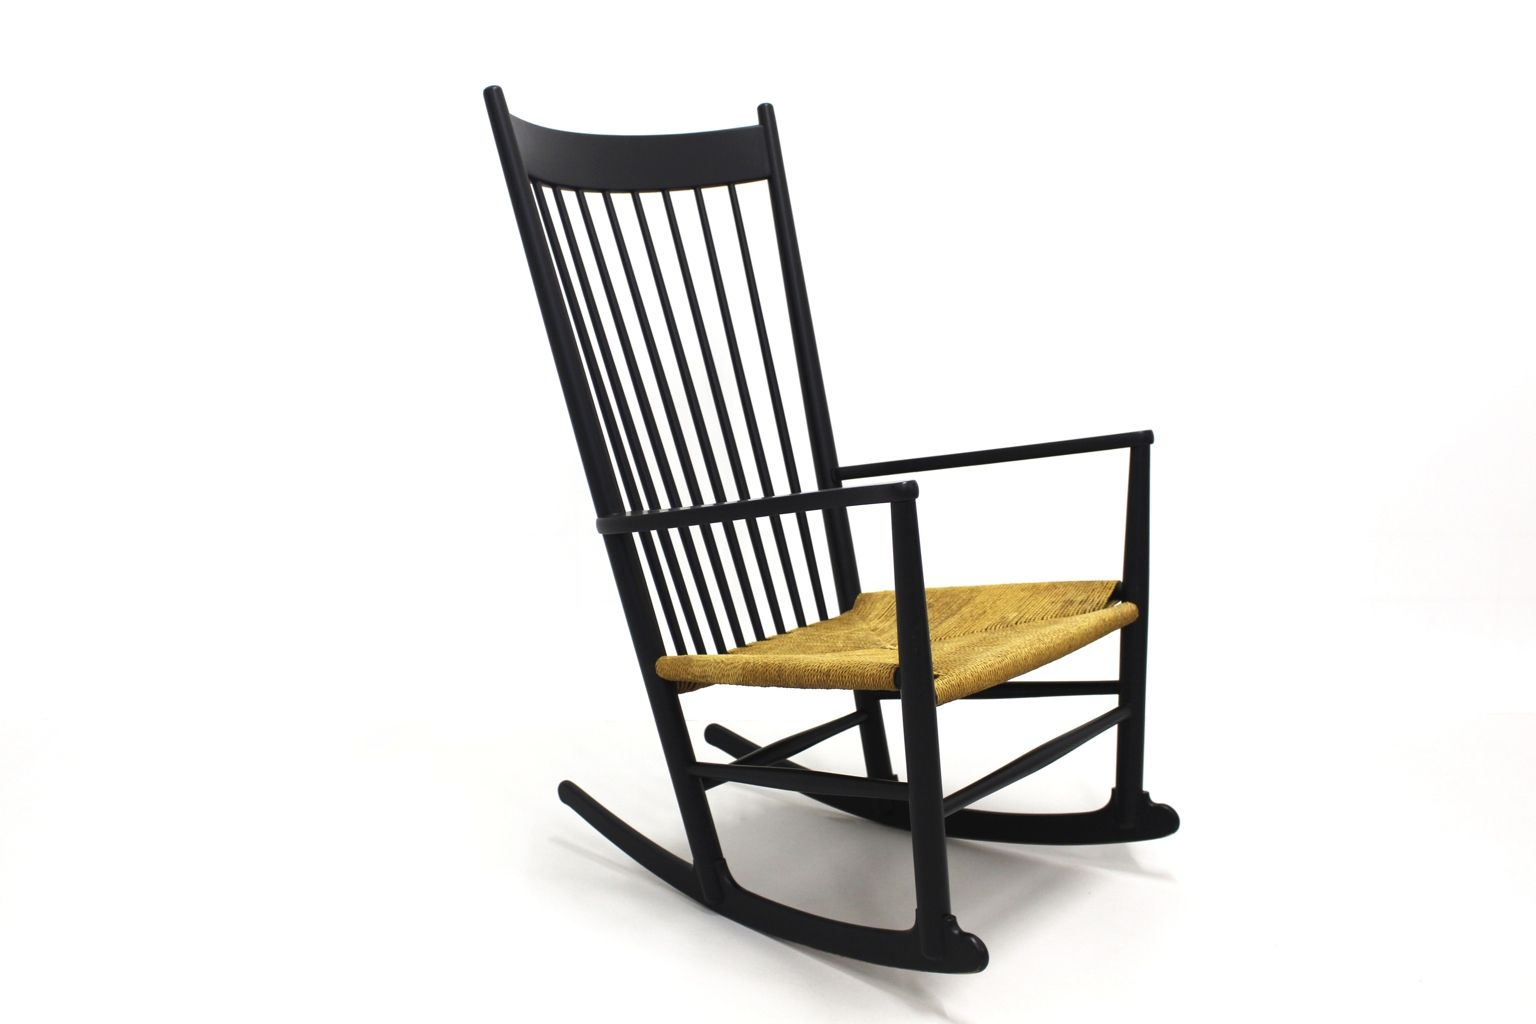 hans wegner rocking chair hon ignition mesh manual j16 by 1964 for sale at pamono